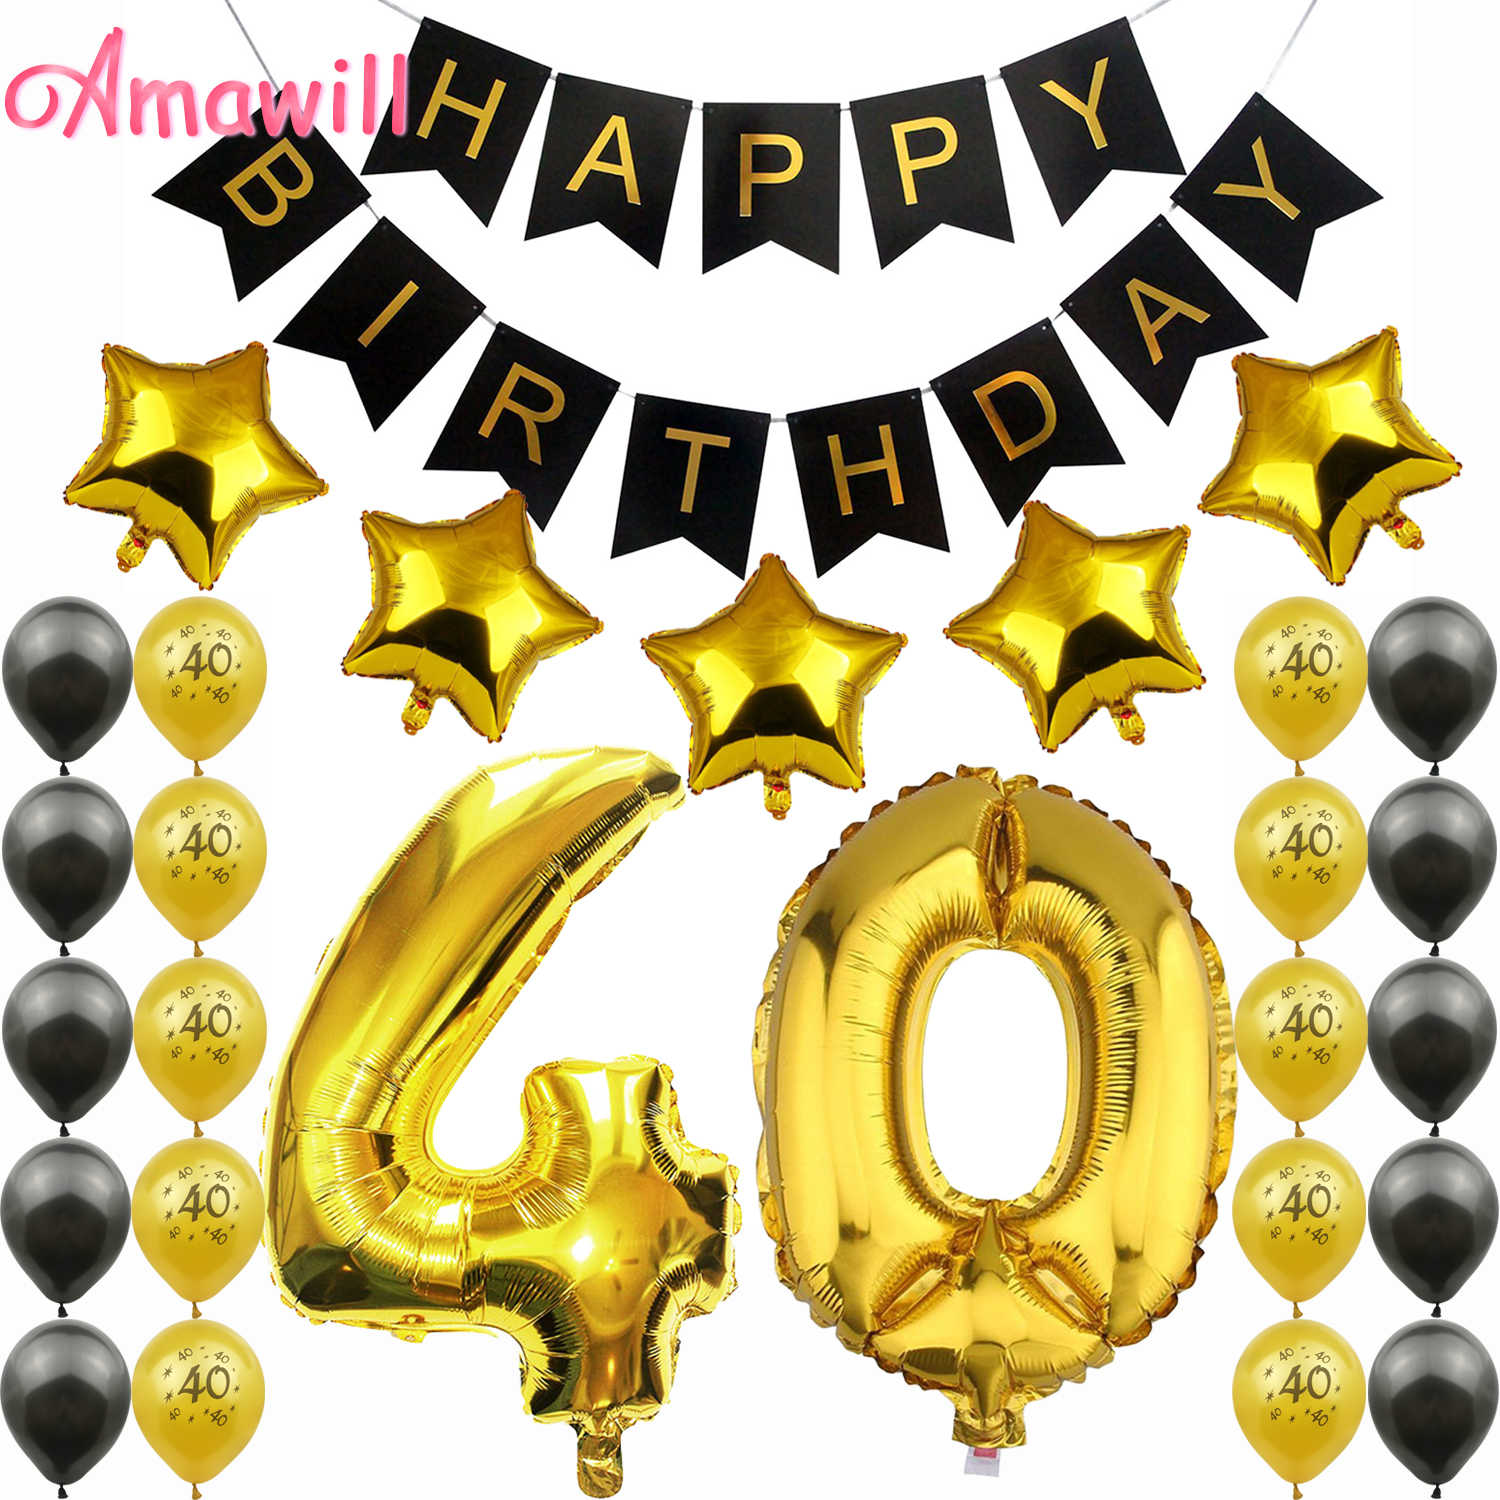 Amawill 40th Birthday Party Decoration Kit Happy Birthday Banner Balloons 32inch Foil Number 40 Years Old Party Supplies 7D